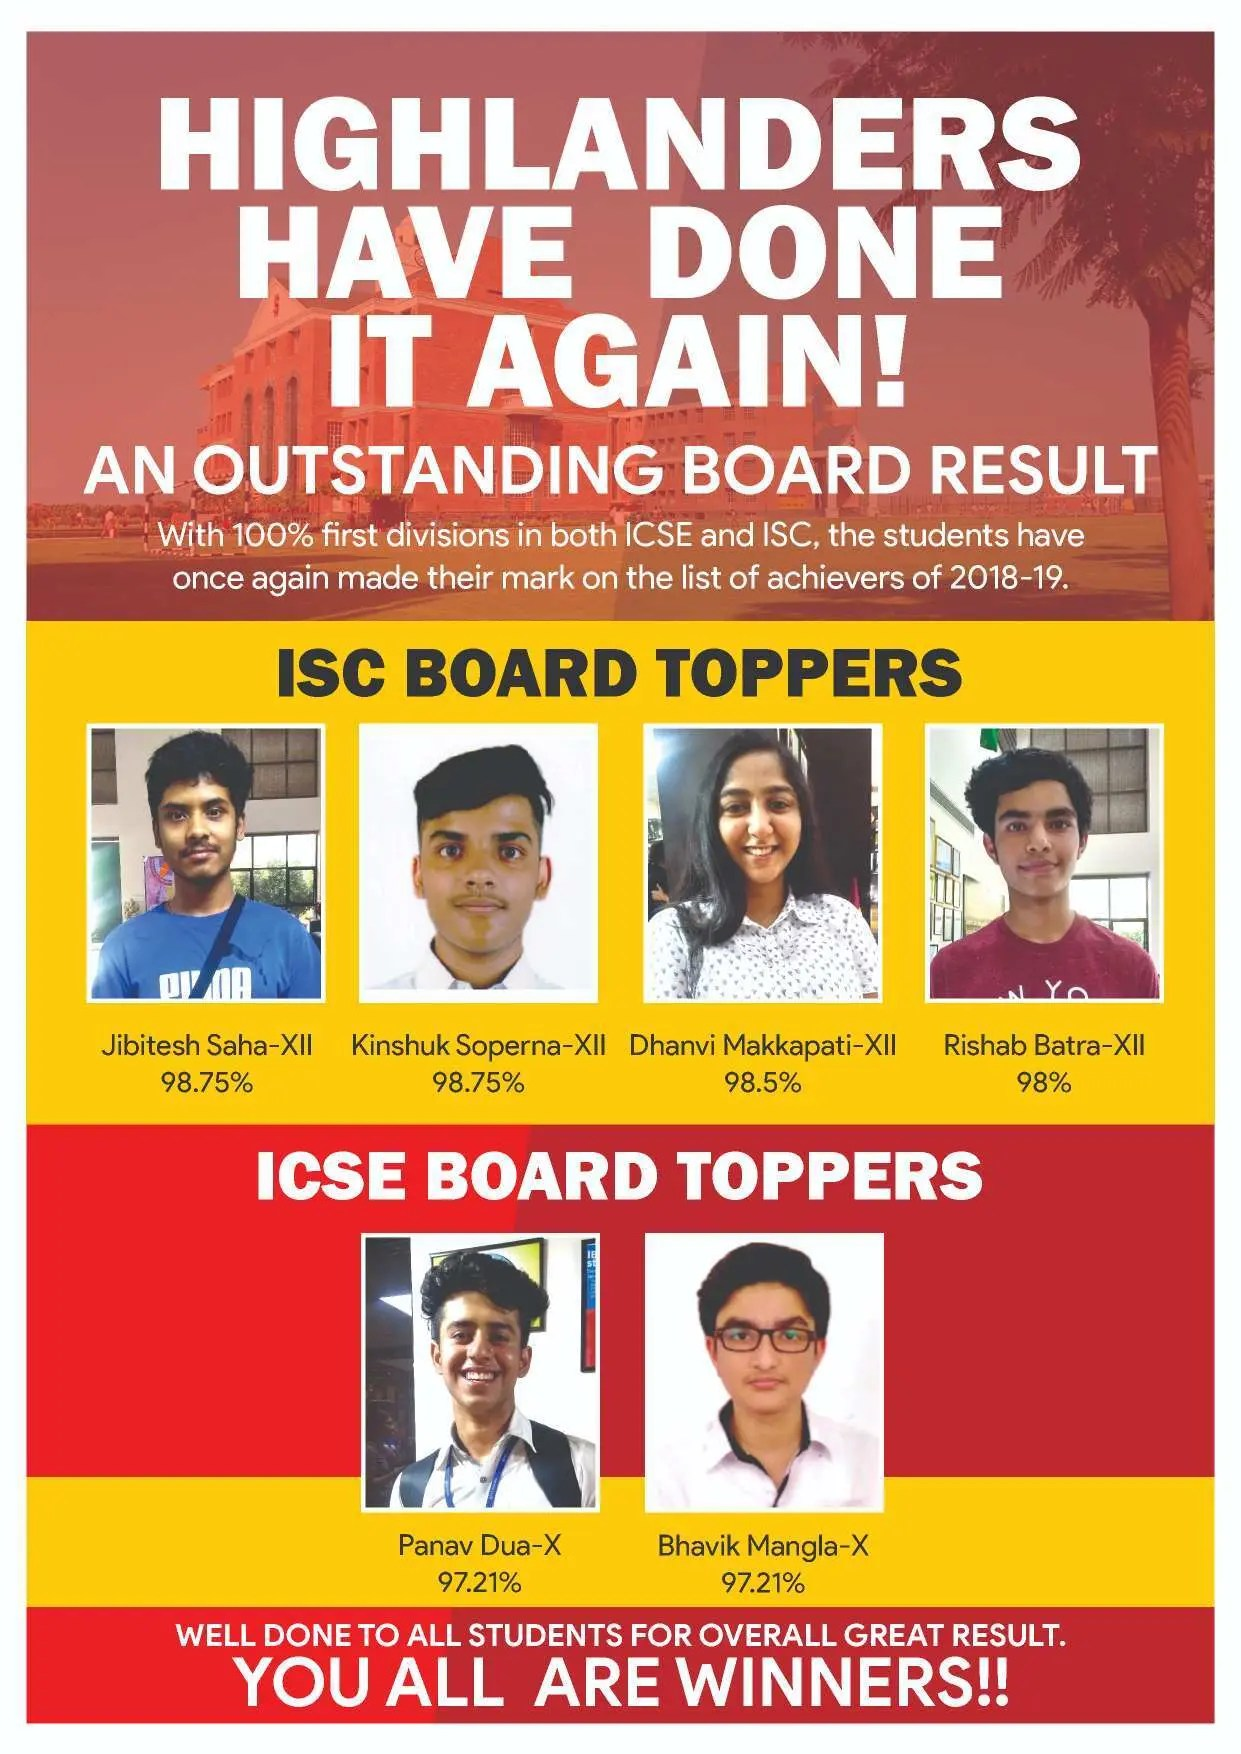 Scottish High International School Result 100% first divisions in both ICSE and ISC